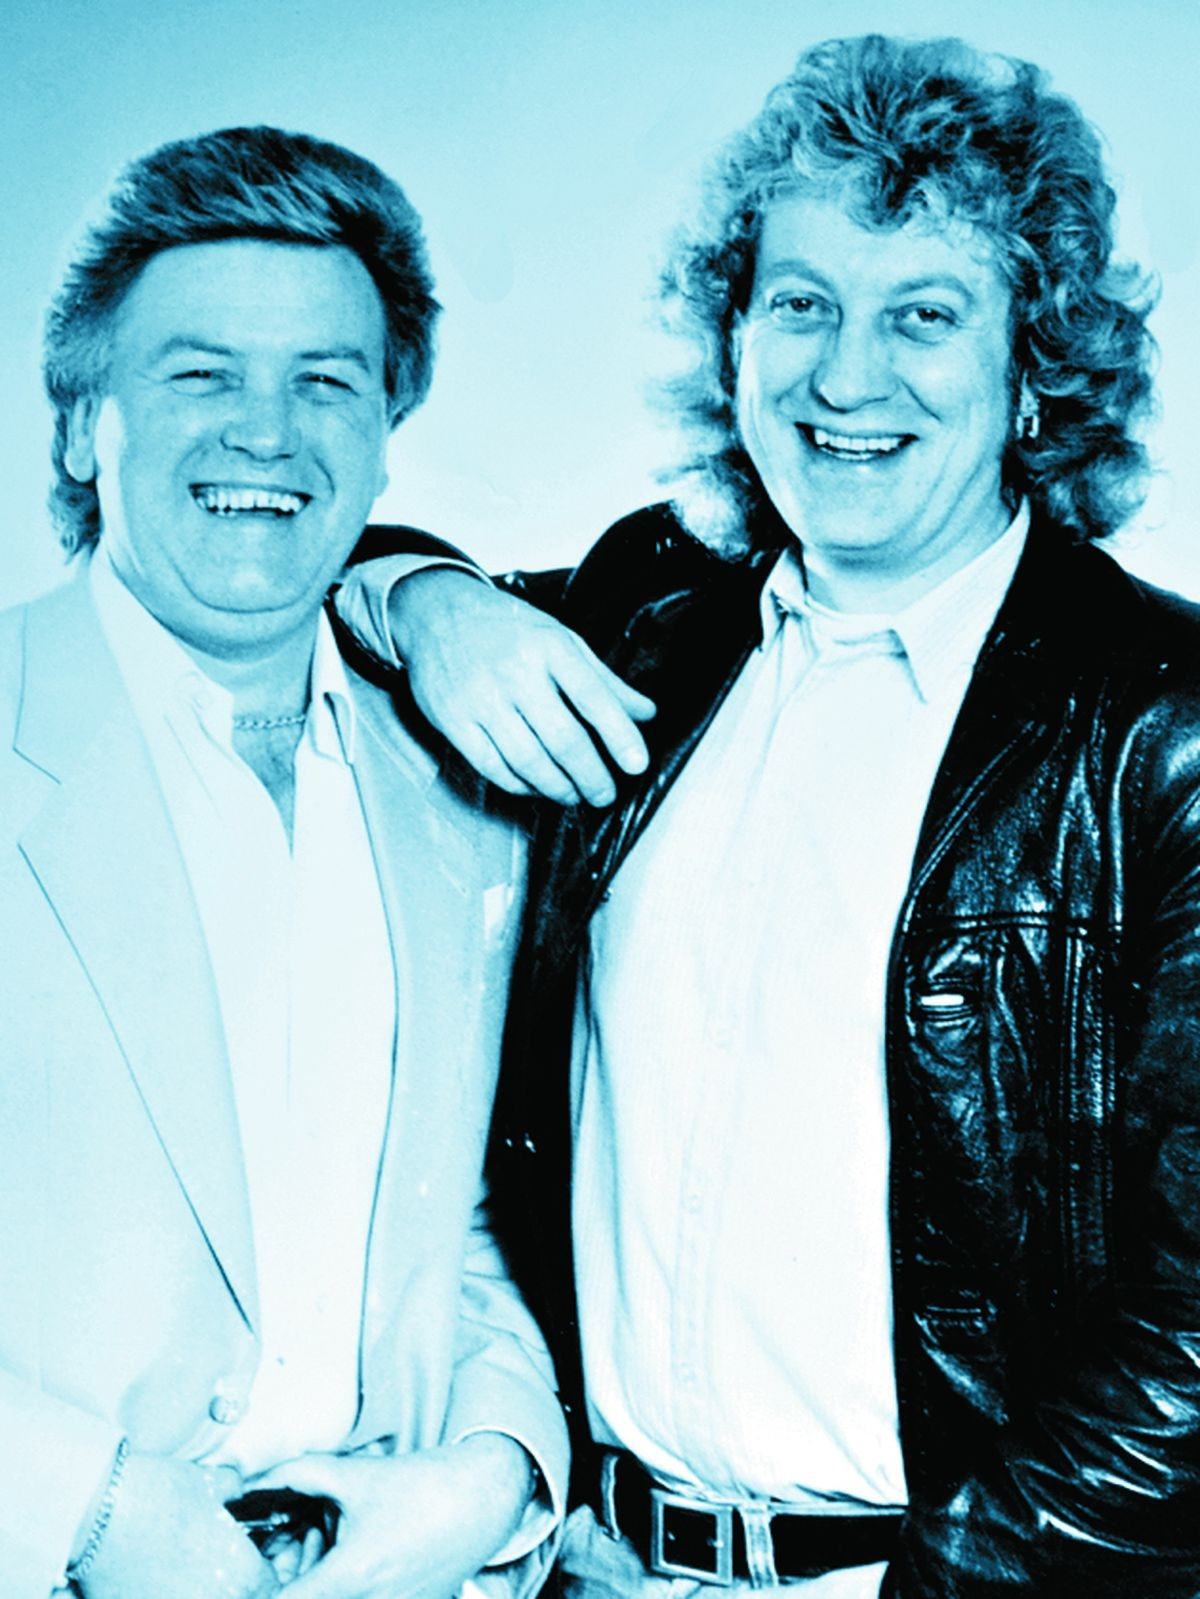 Roger with Slade frontman Noddy Holder